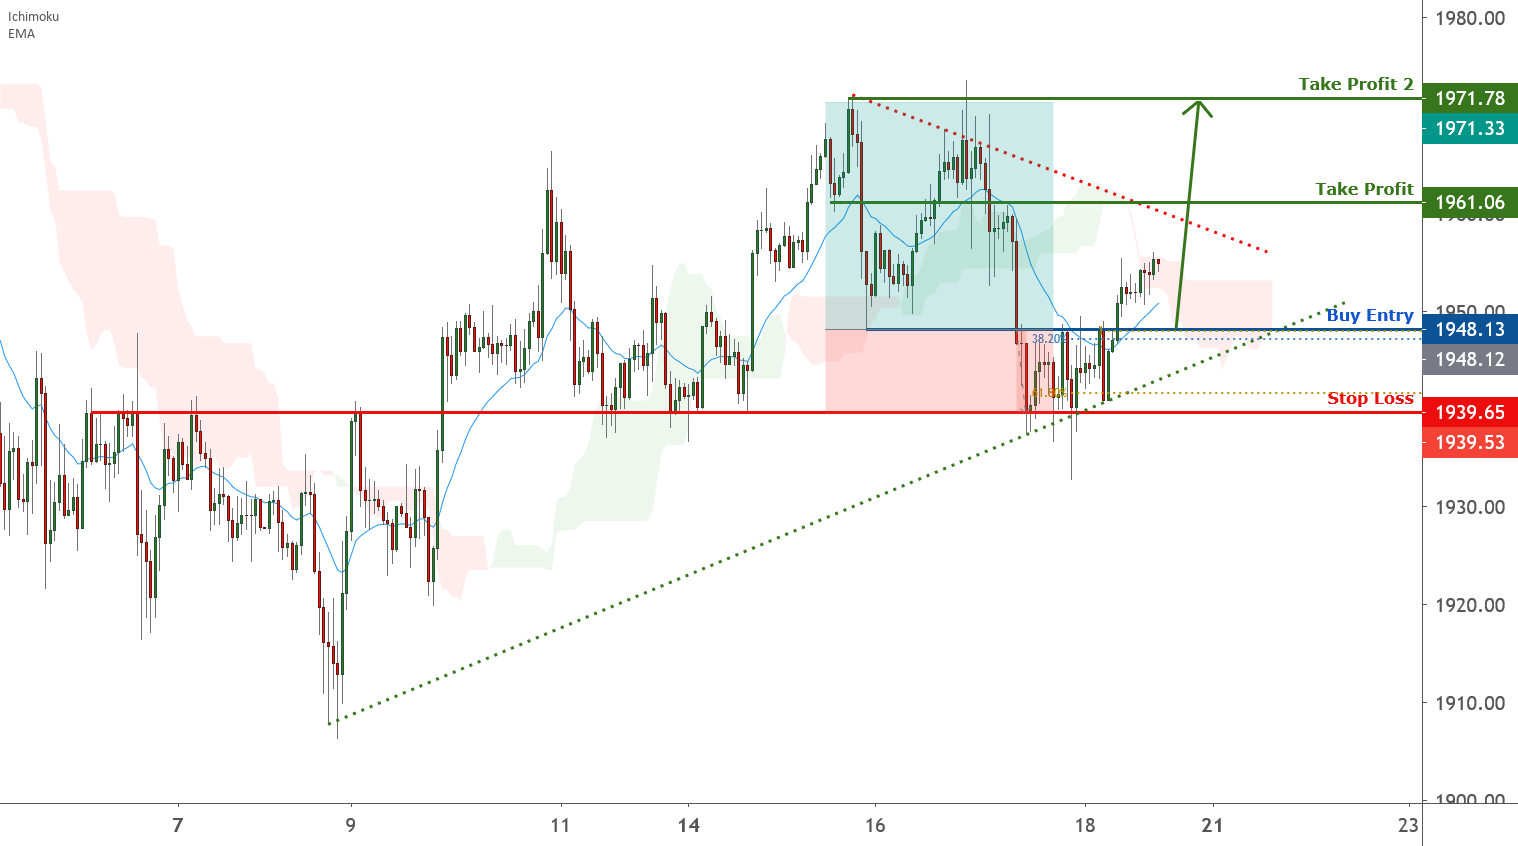 Gold is facing bullish pressure | 18 Sep 2020 for FX:XAUUSD by FXCM